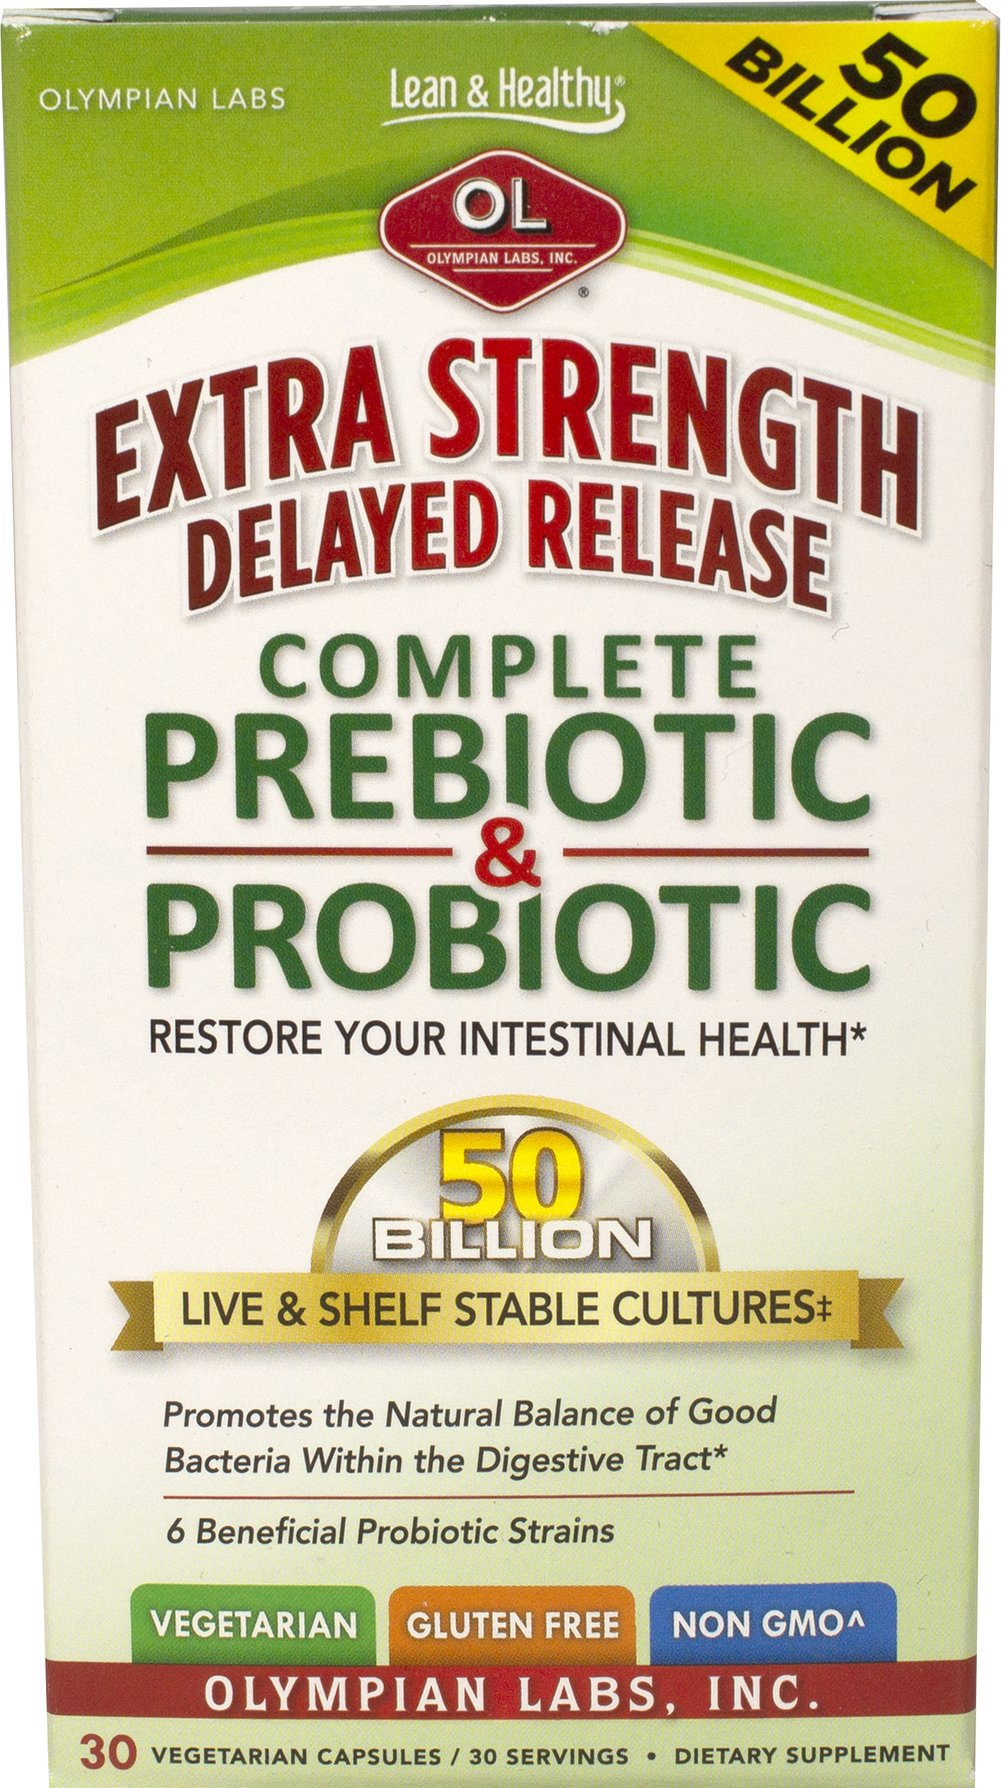 Extra Strength Complete Probiotic & Prebiotic Delayed Release 50 Billion